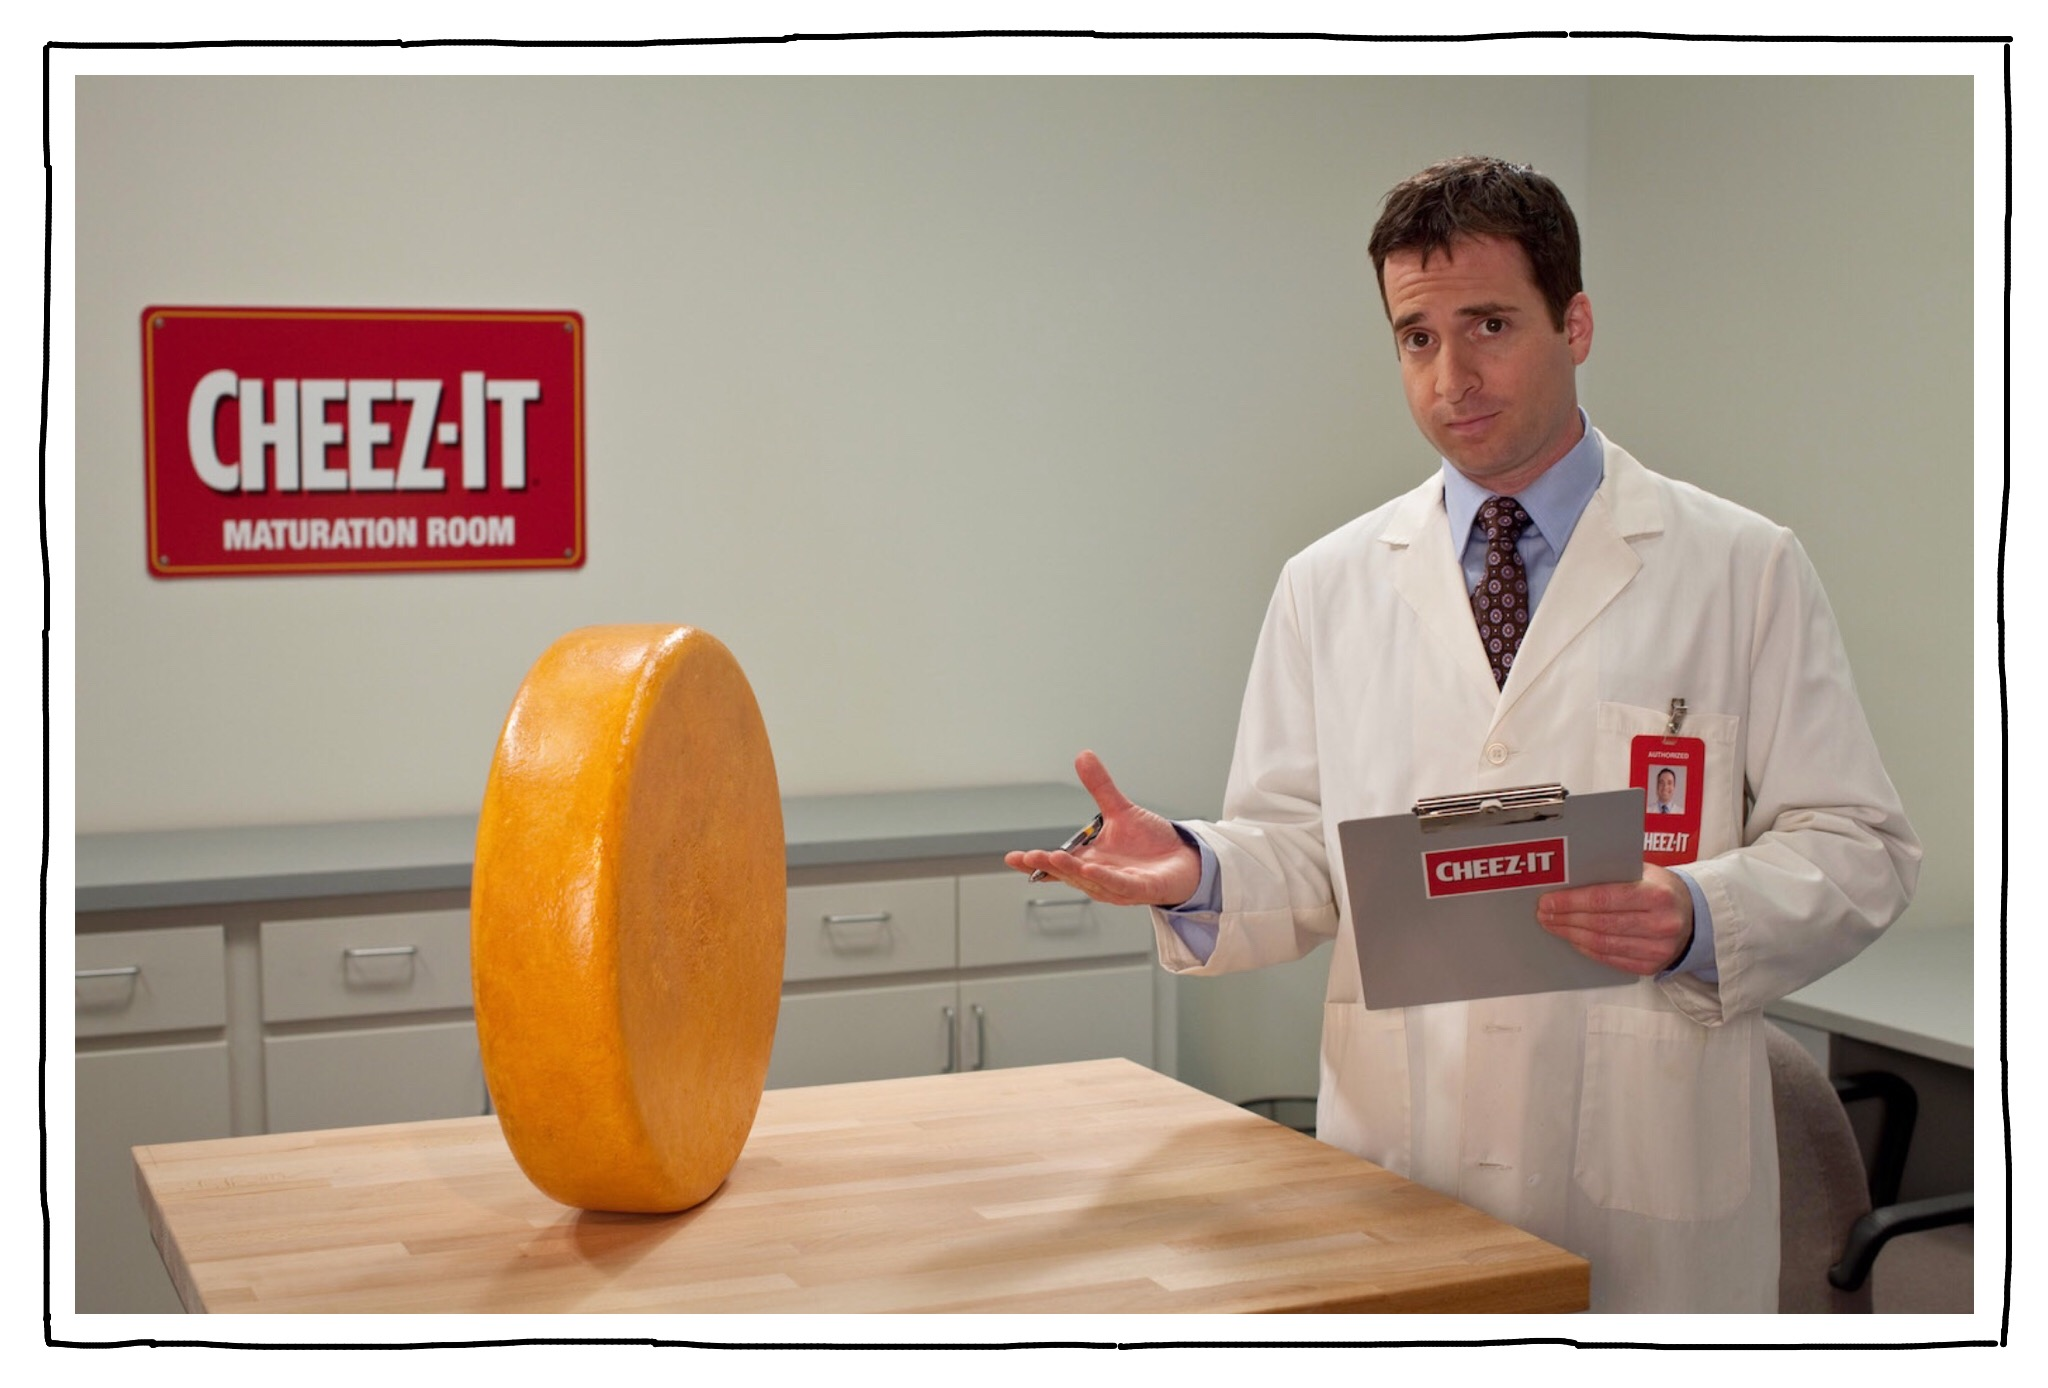 Cheez-It - He is concluding a 9-year run as Joe the Cheese Maturity Scientist in a commercial campaign for Cheez-It, launched by director Christopher Guest. He is now formally licensed to evaluate maturity, so please be on your best behavior.